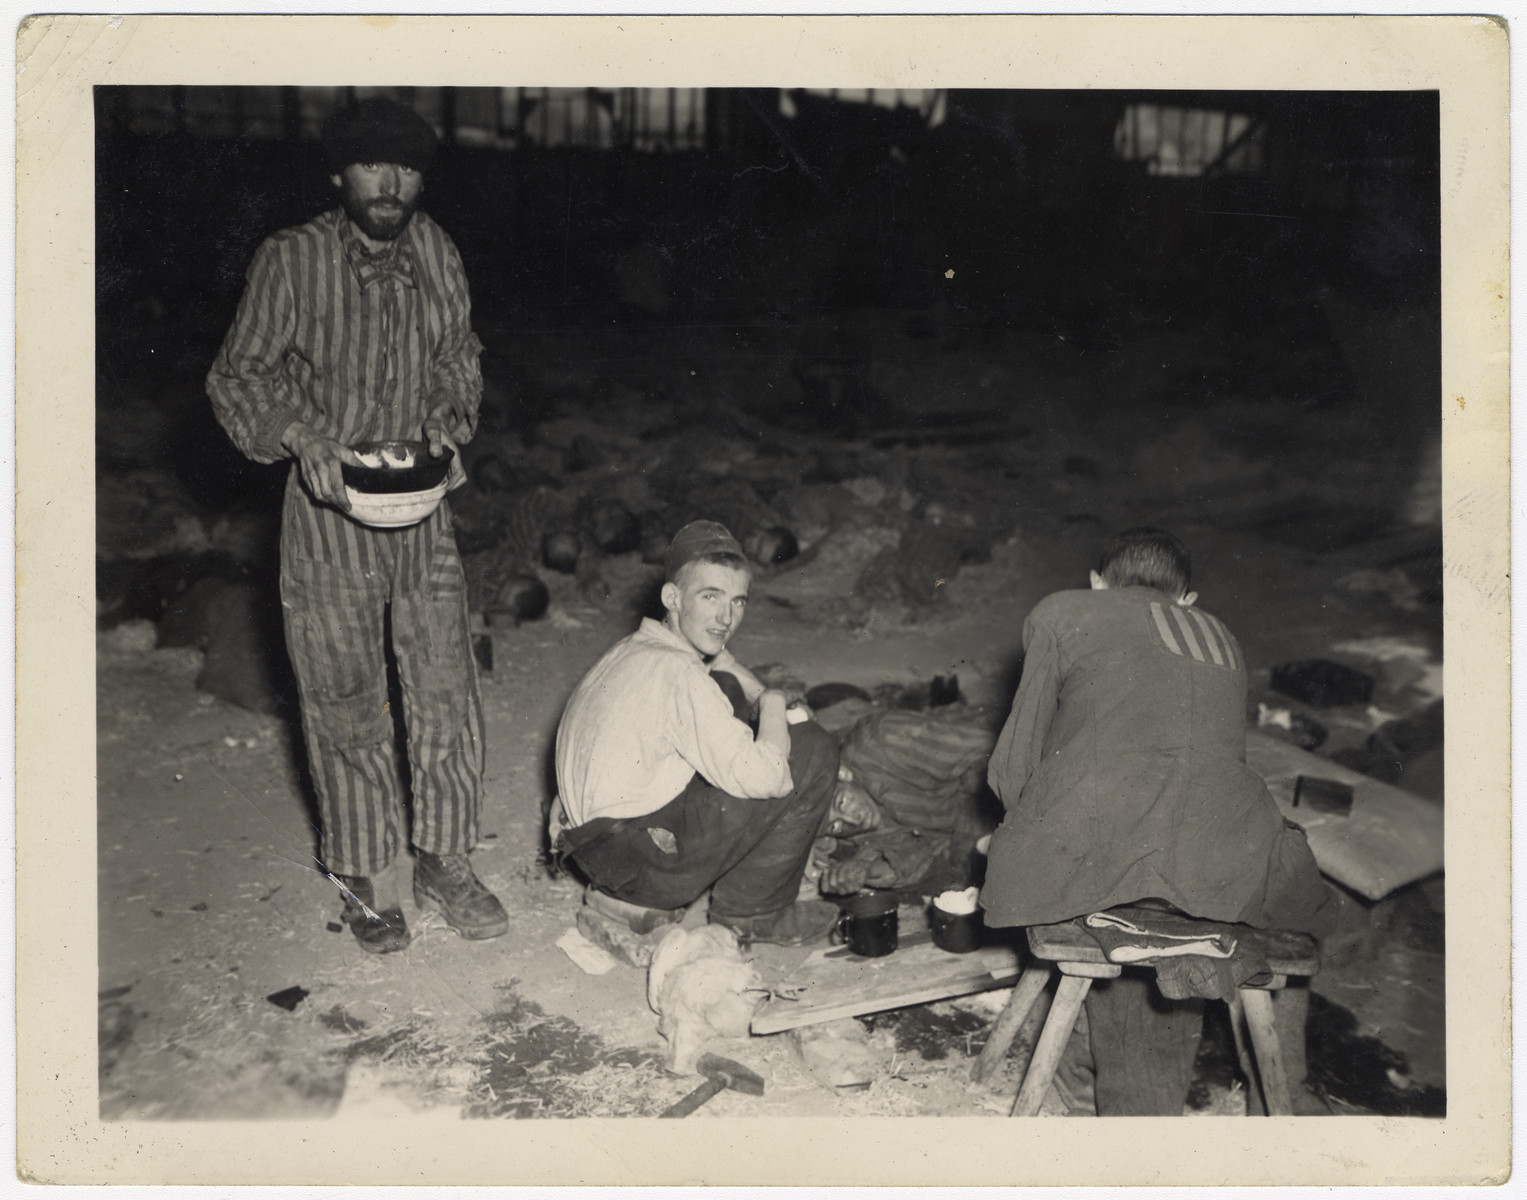 Three survivors gather in a barrack of the Nordhausen concentration camp.